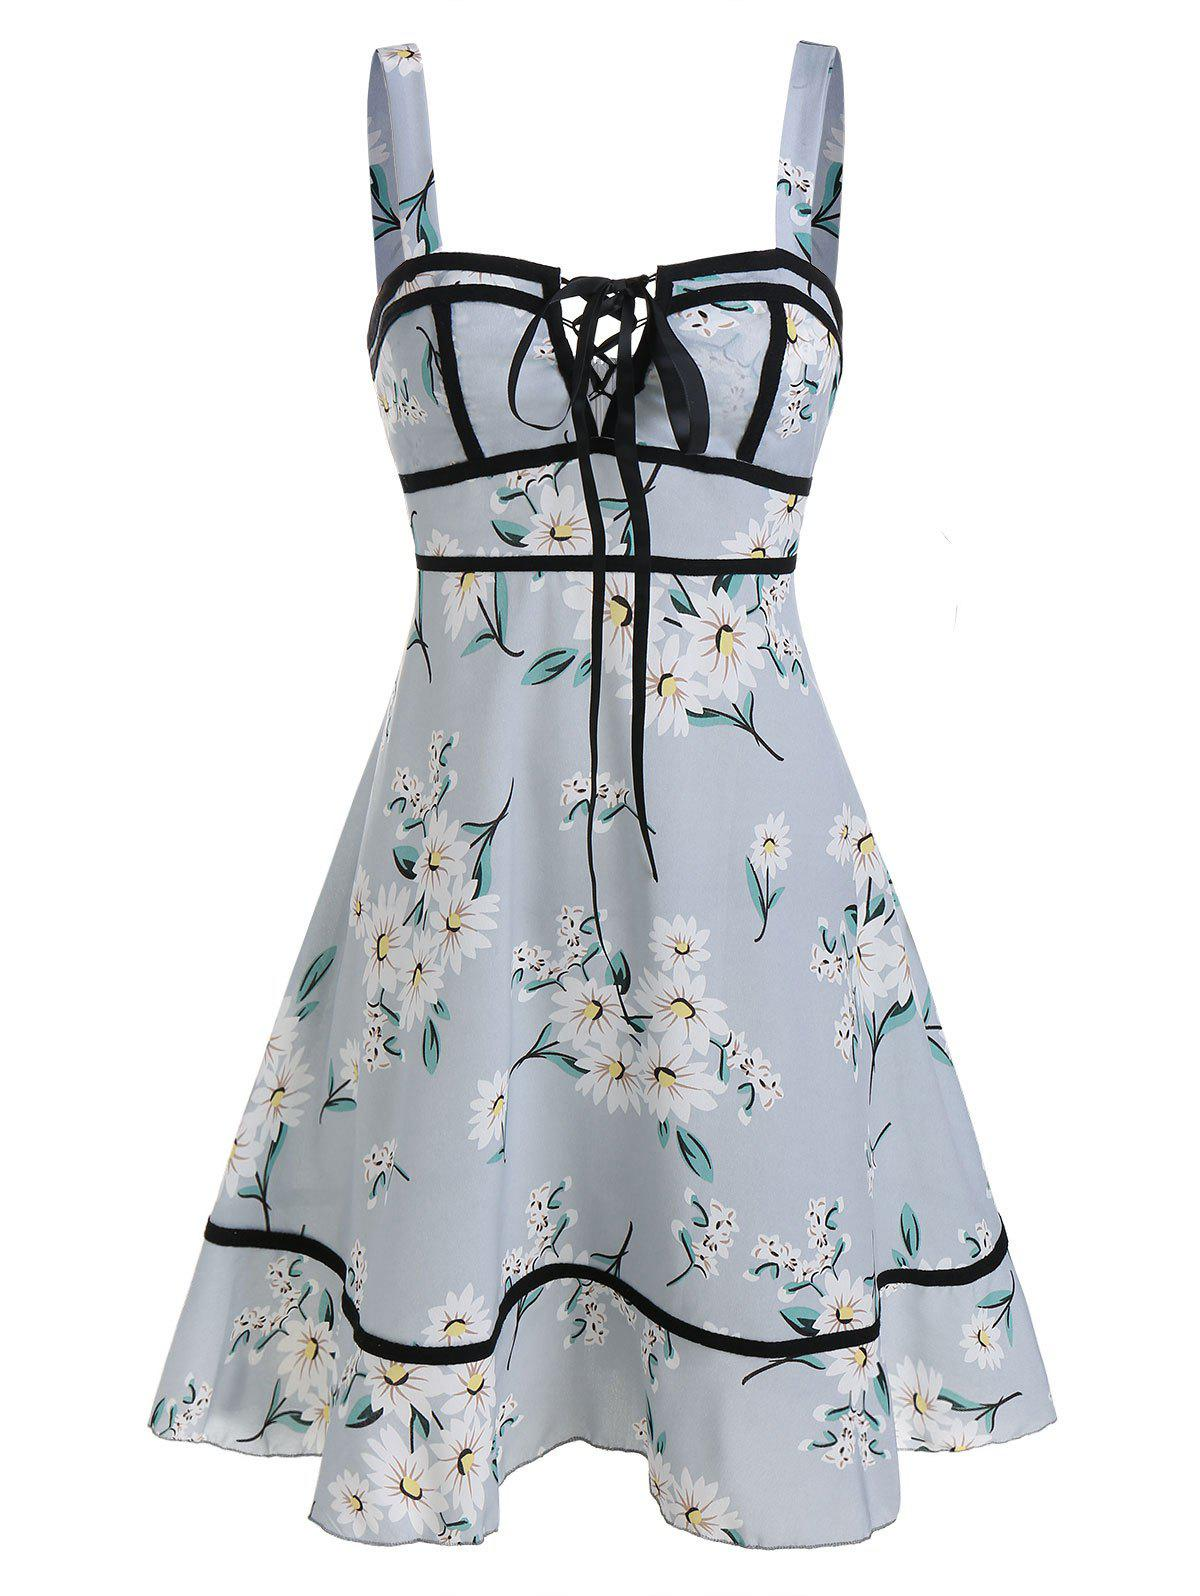 Flower Print Lace-up Sleeveless Dress - BLUE GRAY M